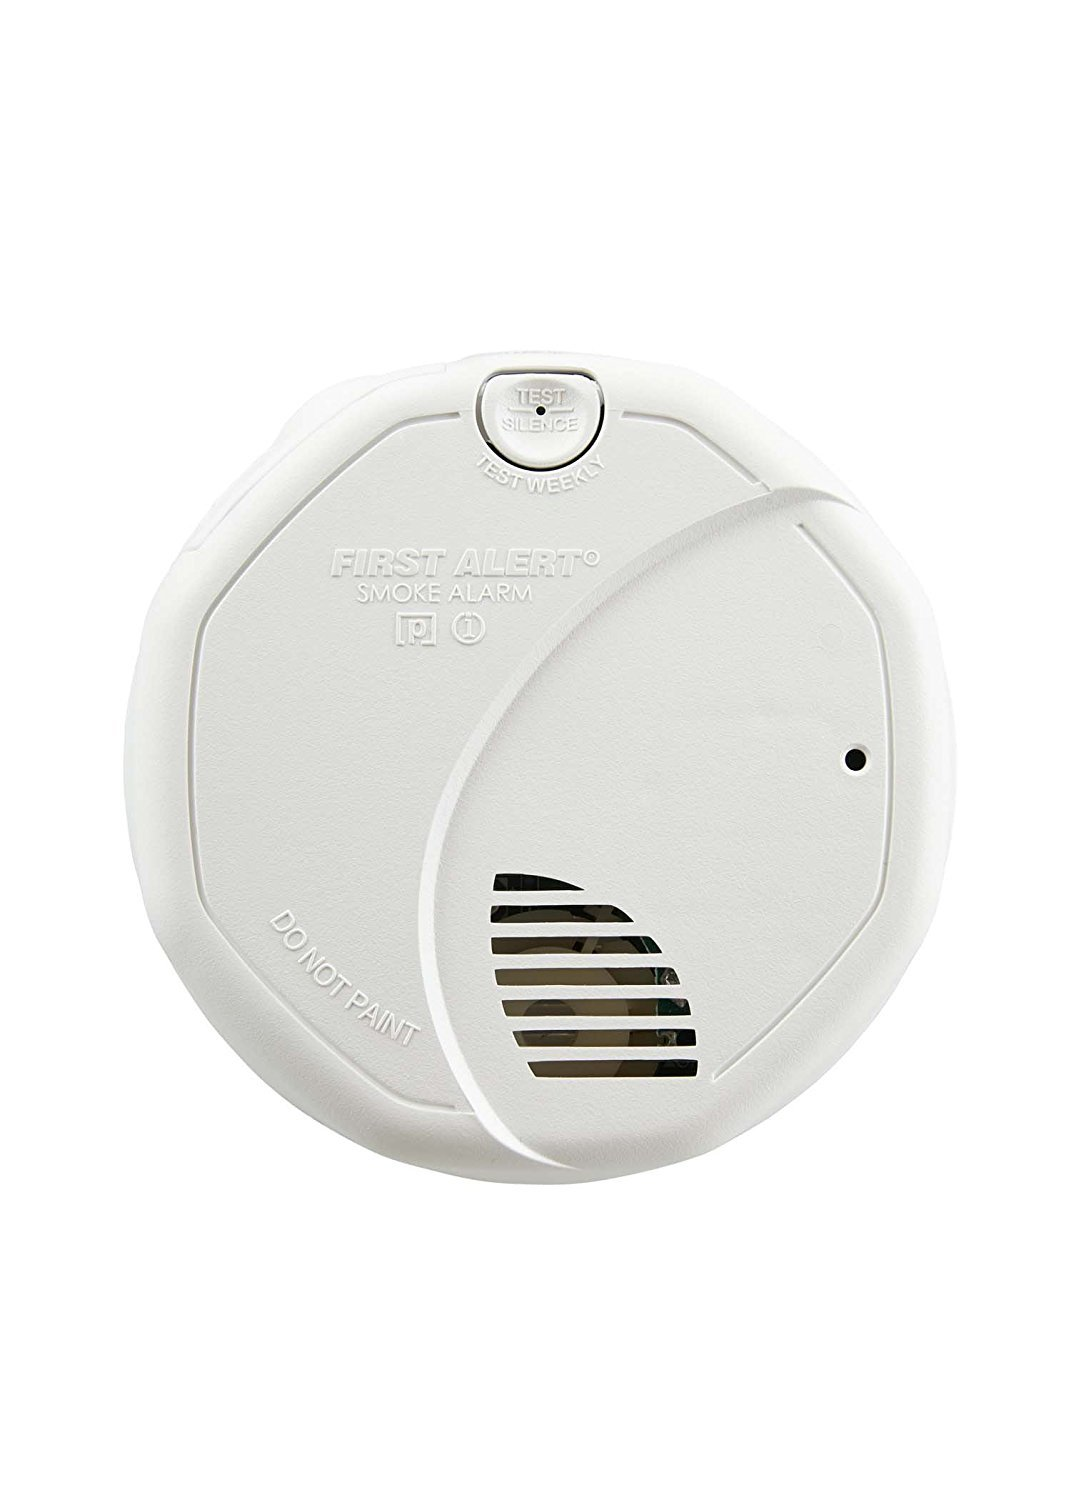 First Alert BRK 3120B-6 Hardwired Photoelectric and Ionization Smoke Alarm with Battery Backup, 6 Pack by First Alert